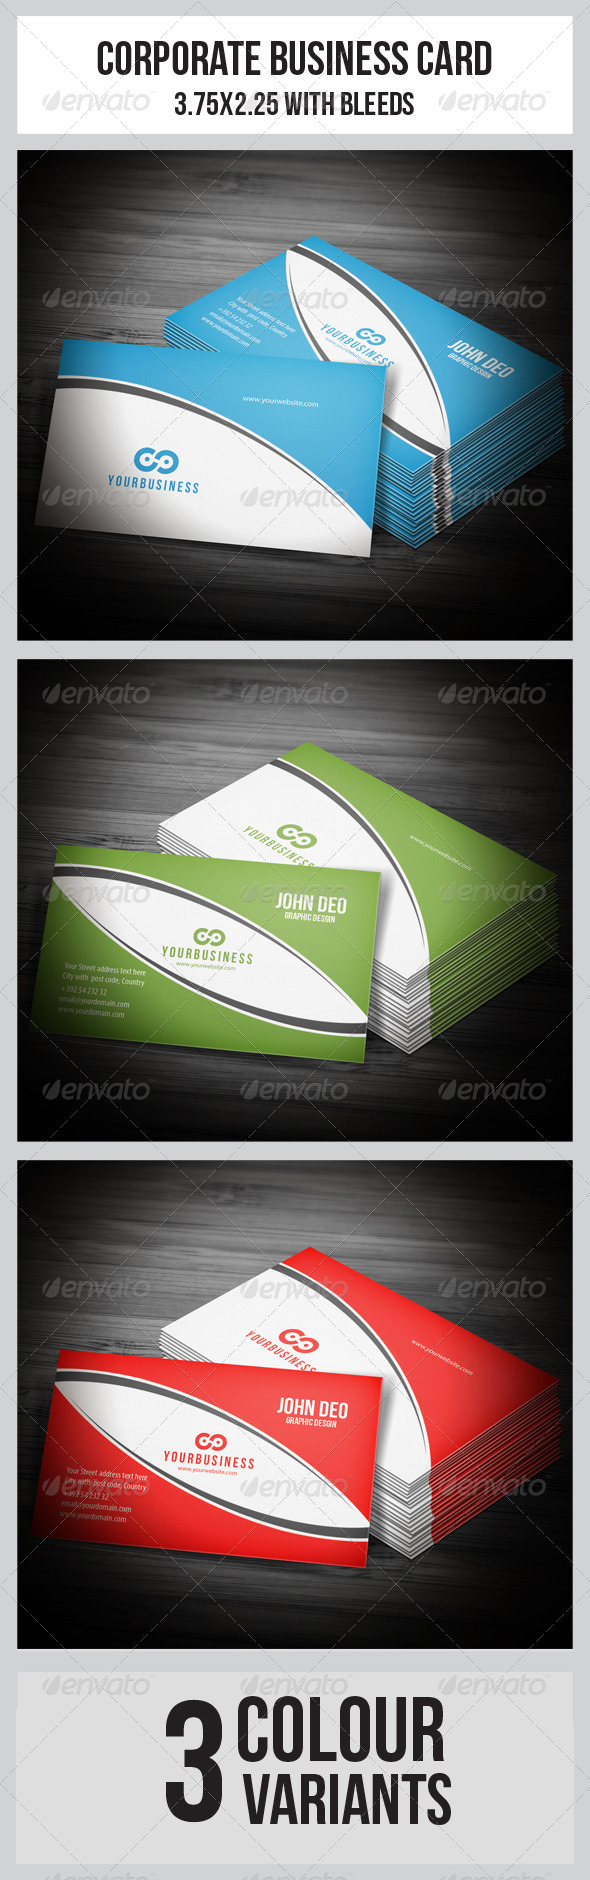 Multipurpose Business Card  - Corporate Business Cards